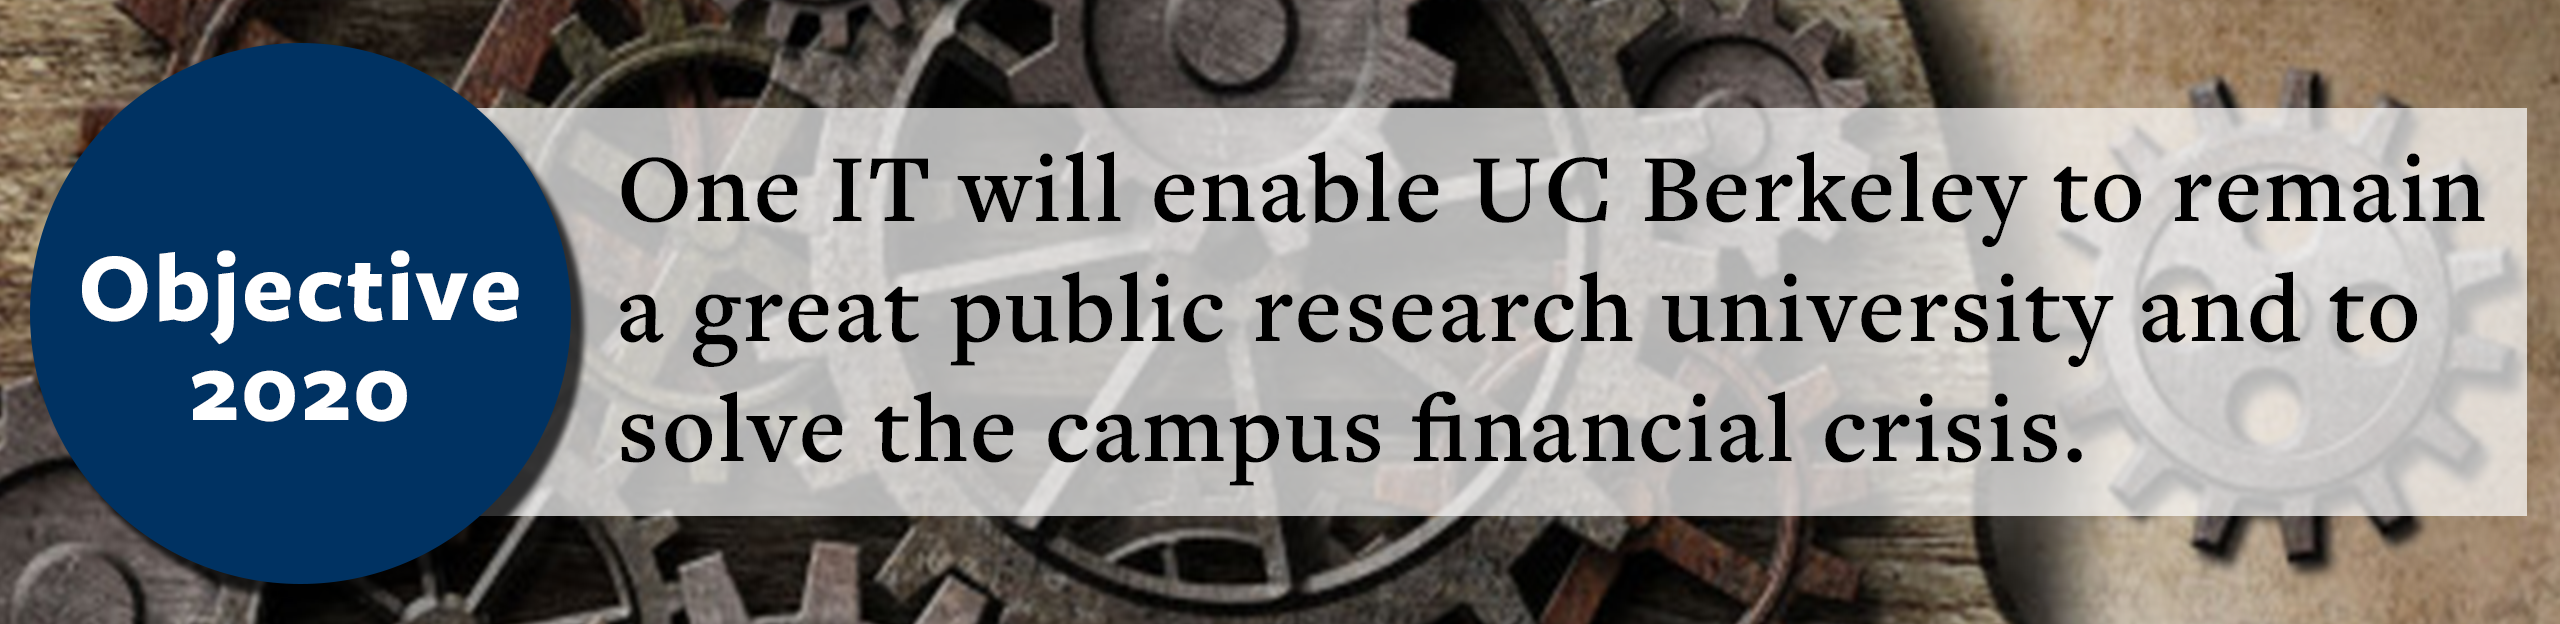 One IT will enable UC Berkeley to remain a great public research university and to solve the campus financial crisis.